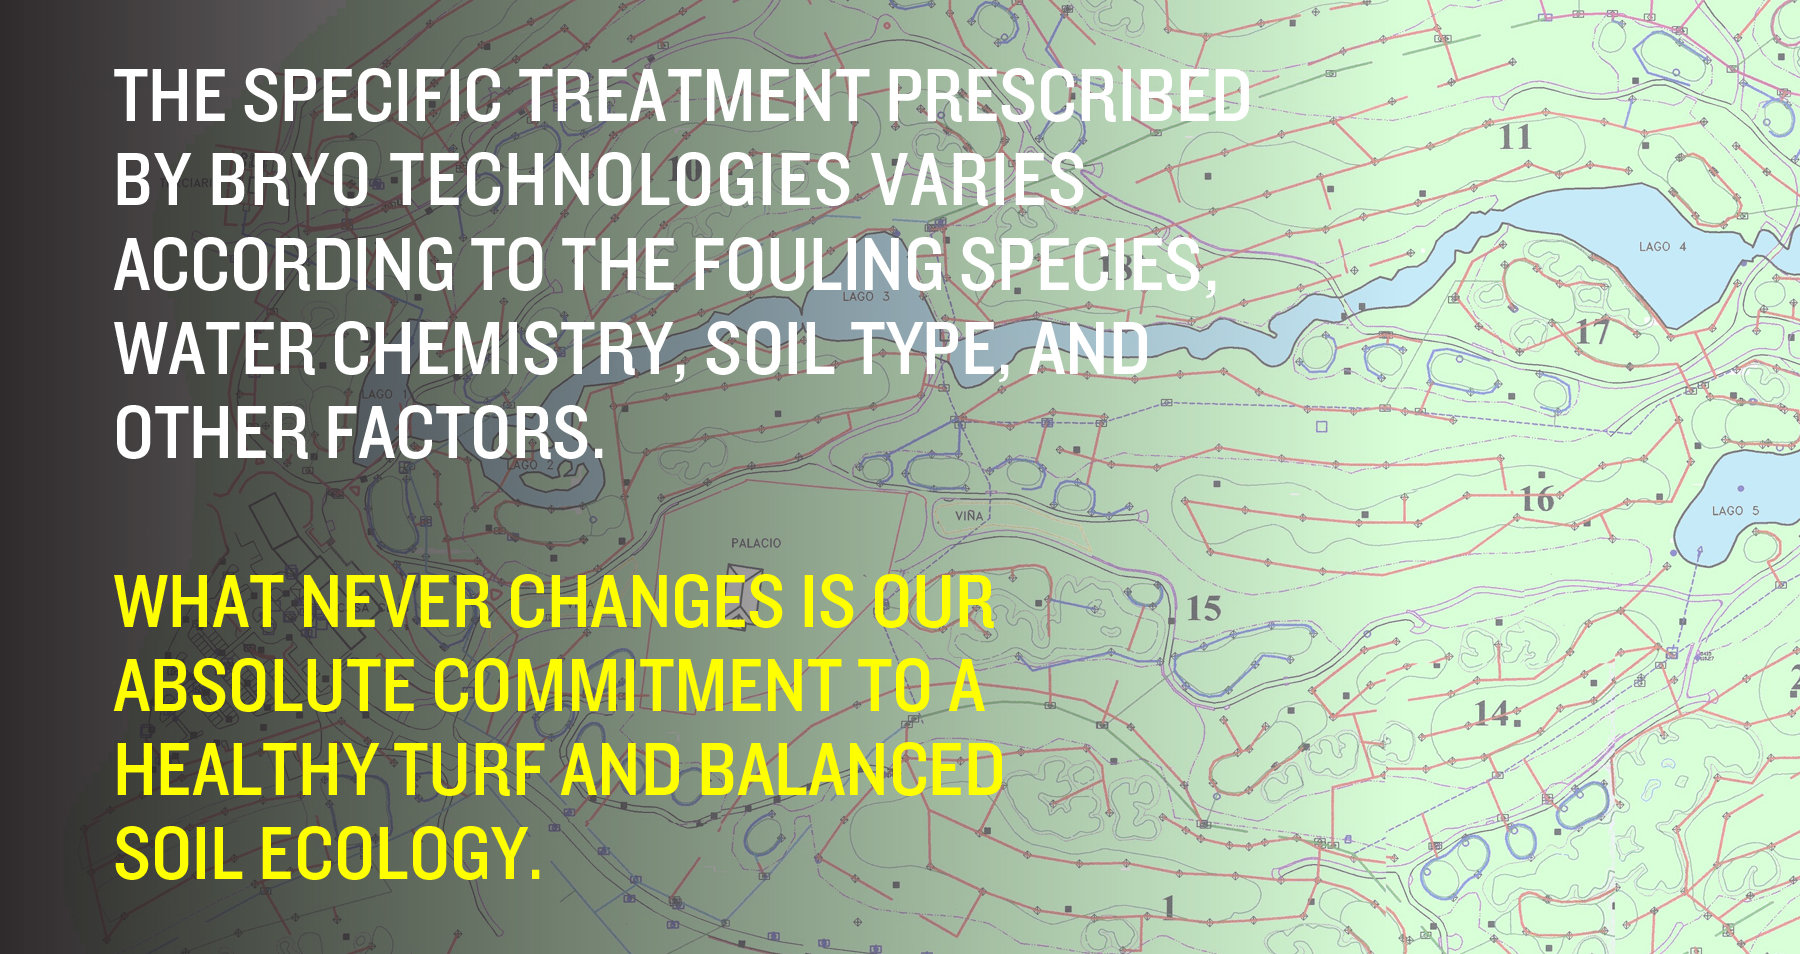 he specific treatment prescribed by Bryo Technologies varies according to the fouling species, water chemistry, soil type, and other factors. What never changes is our absolute commitment to a healthy turf and balanced soil ecology.